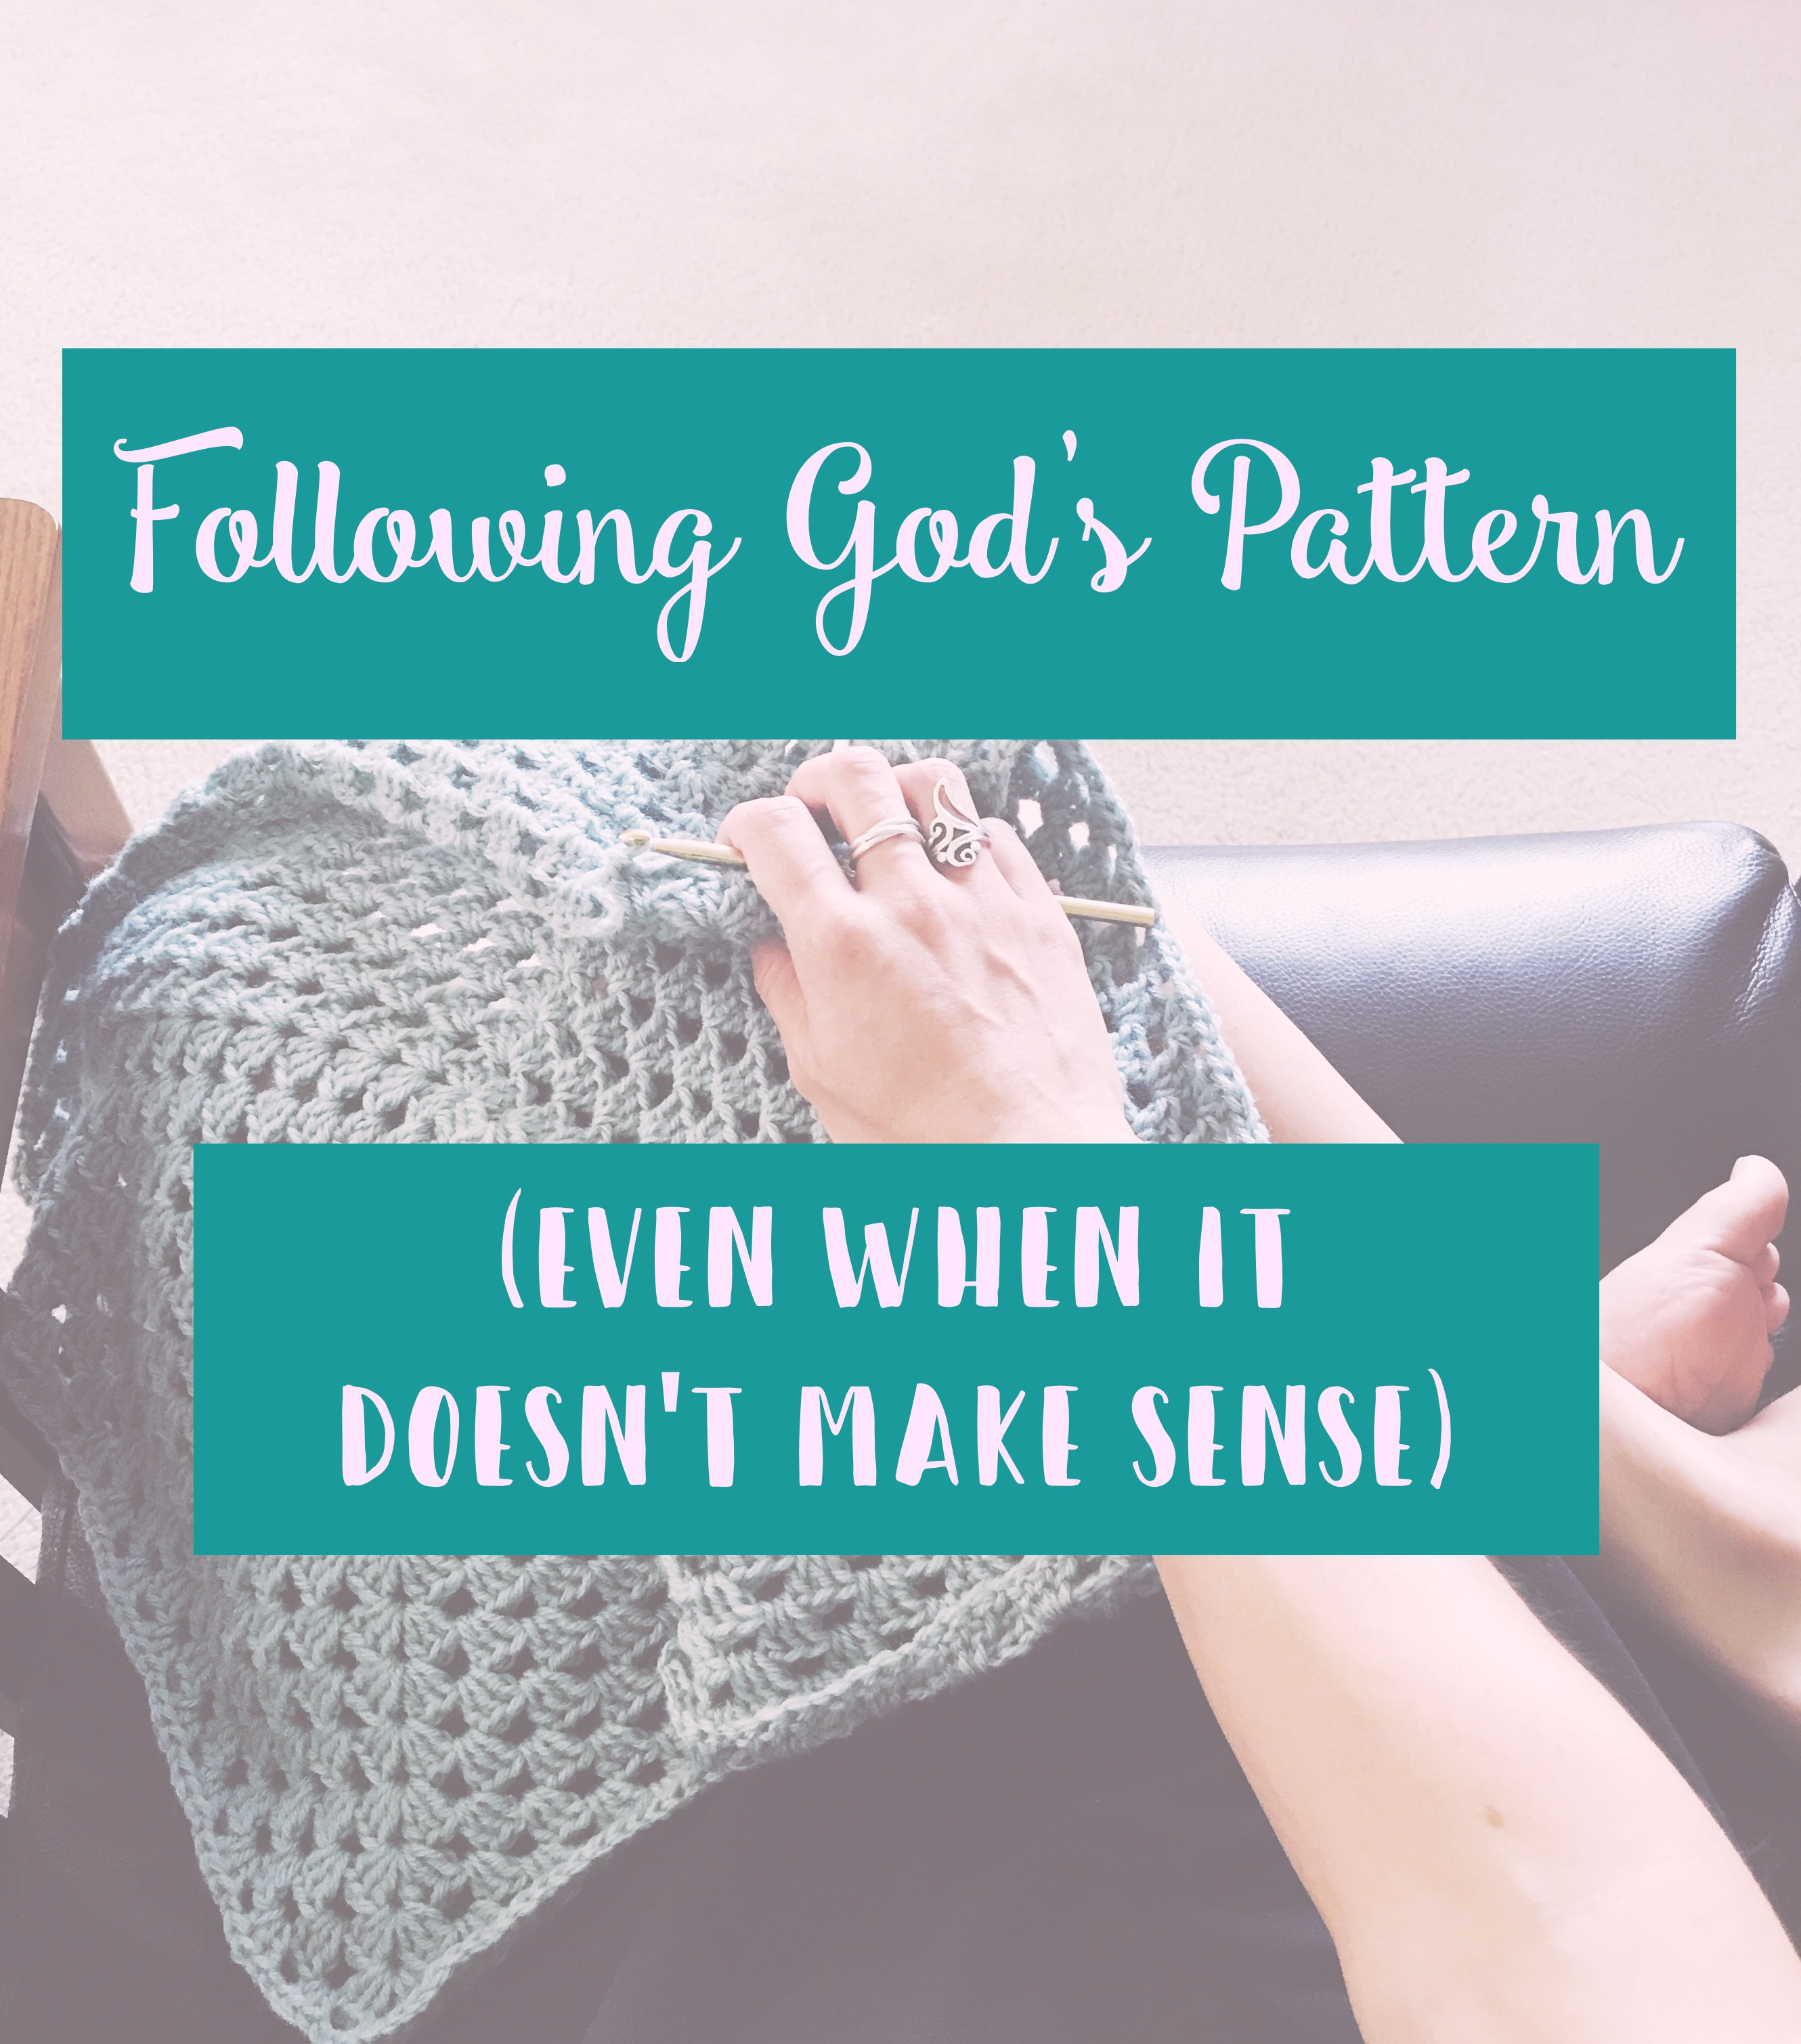 Following God's Pattern